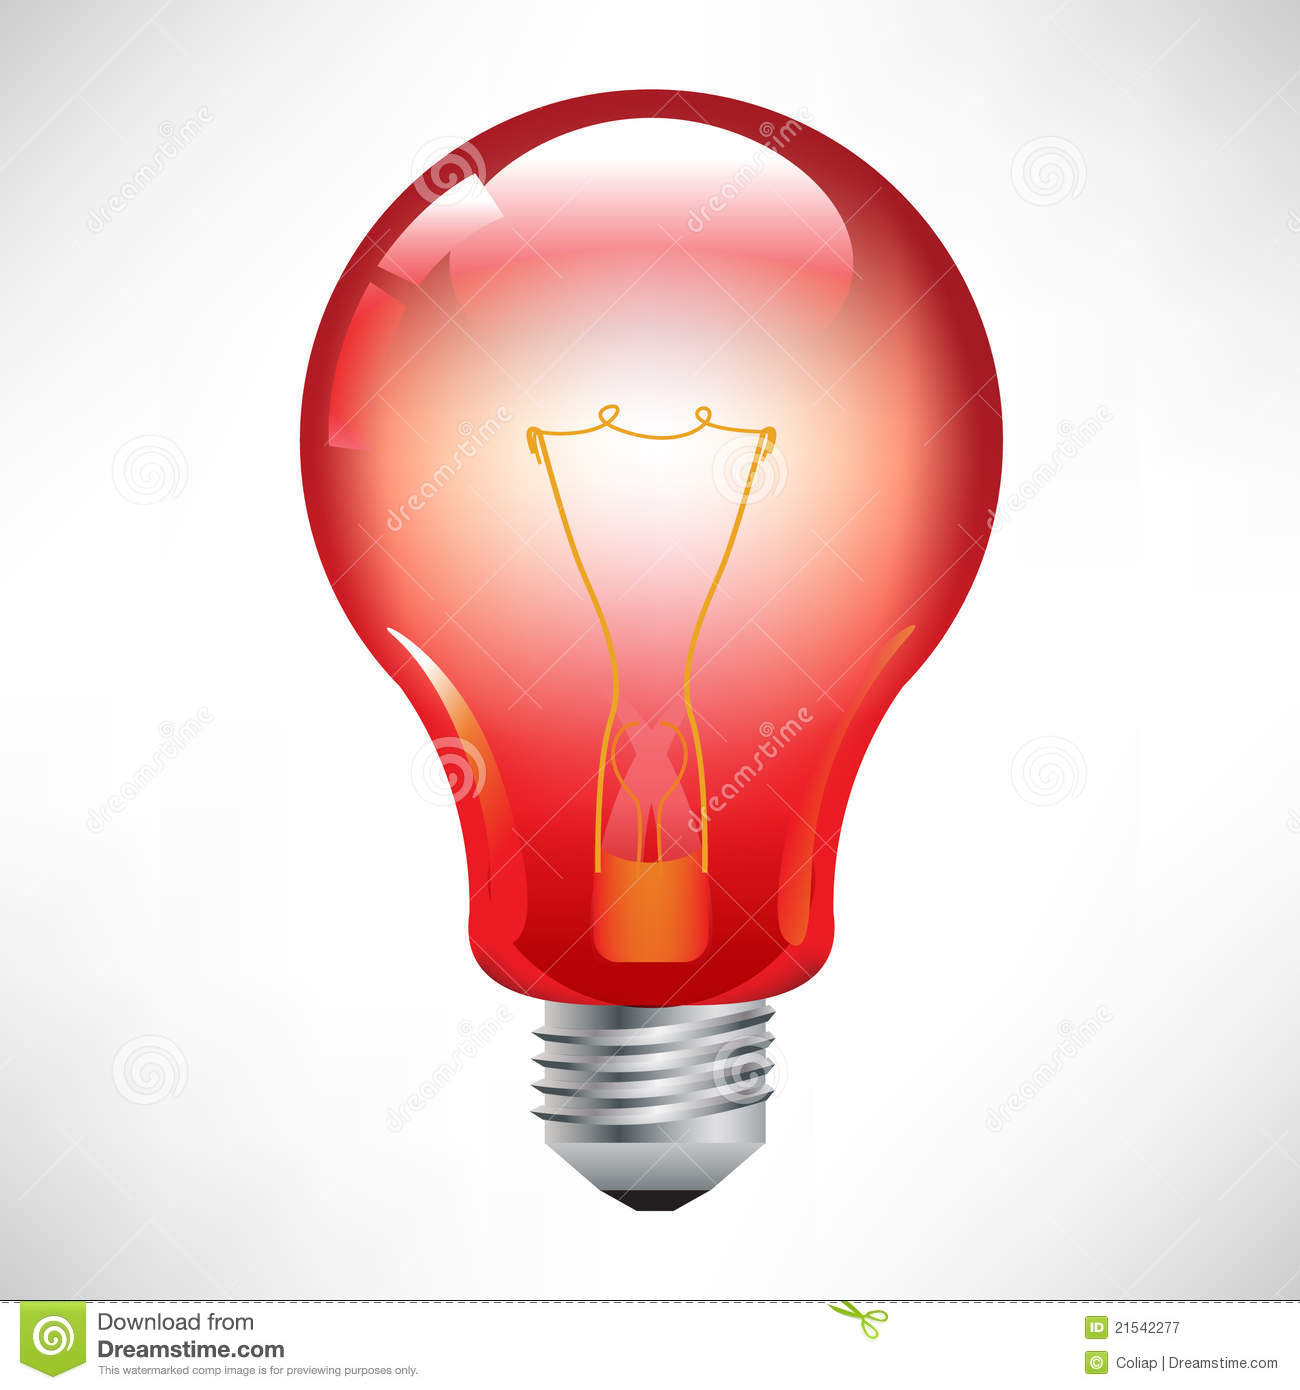 Red Light Bulb Royalty Free Stock Photography Image 21542277